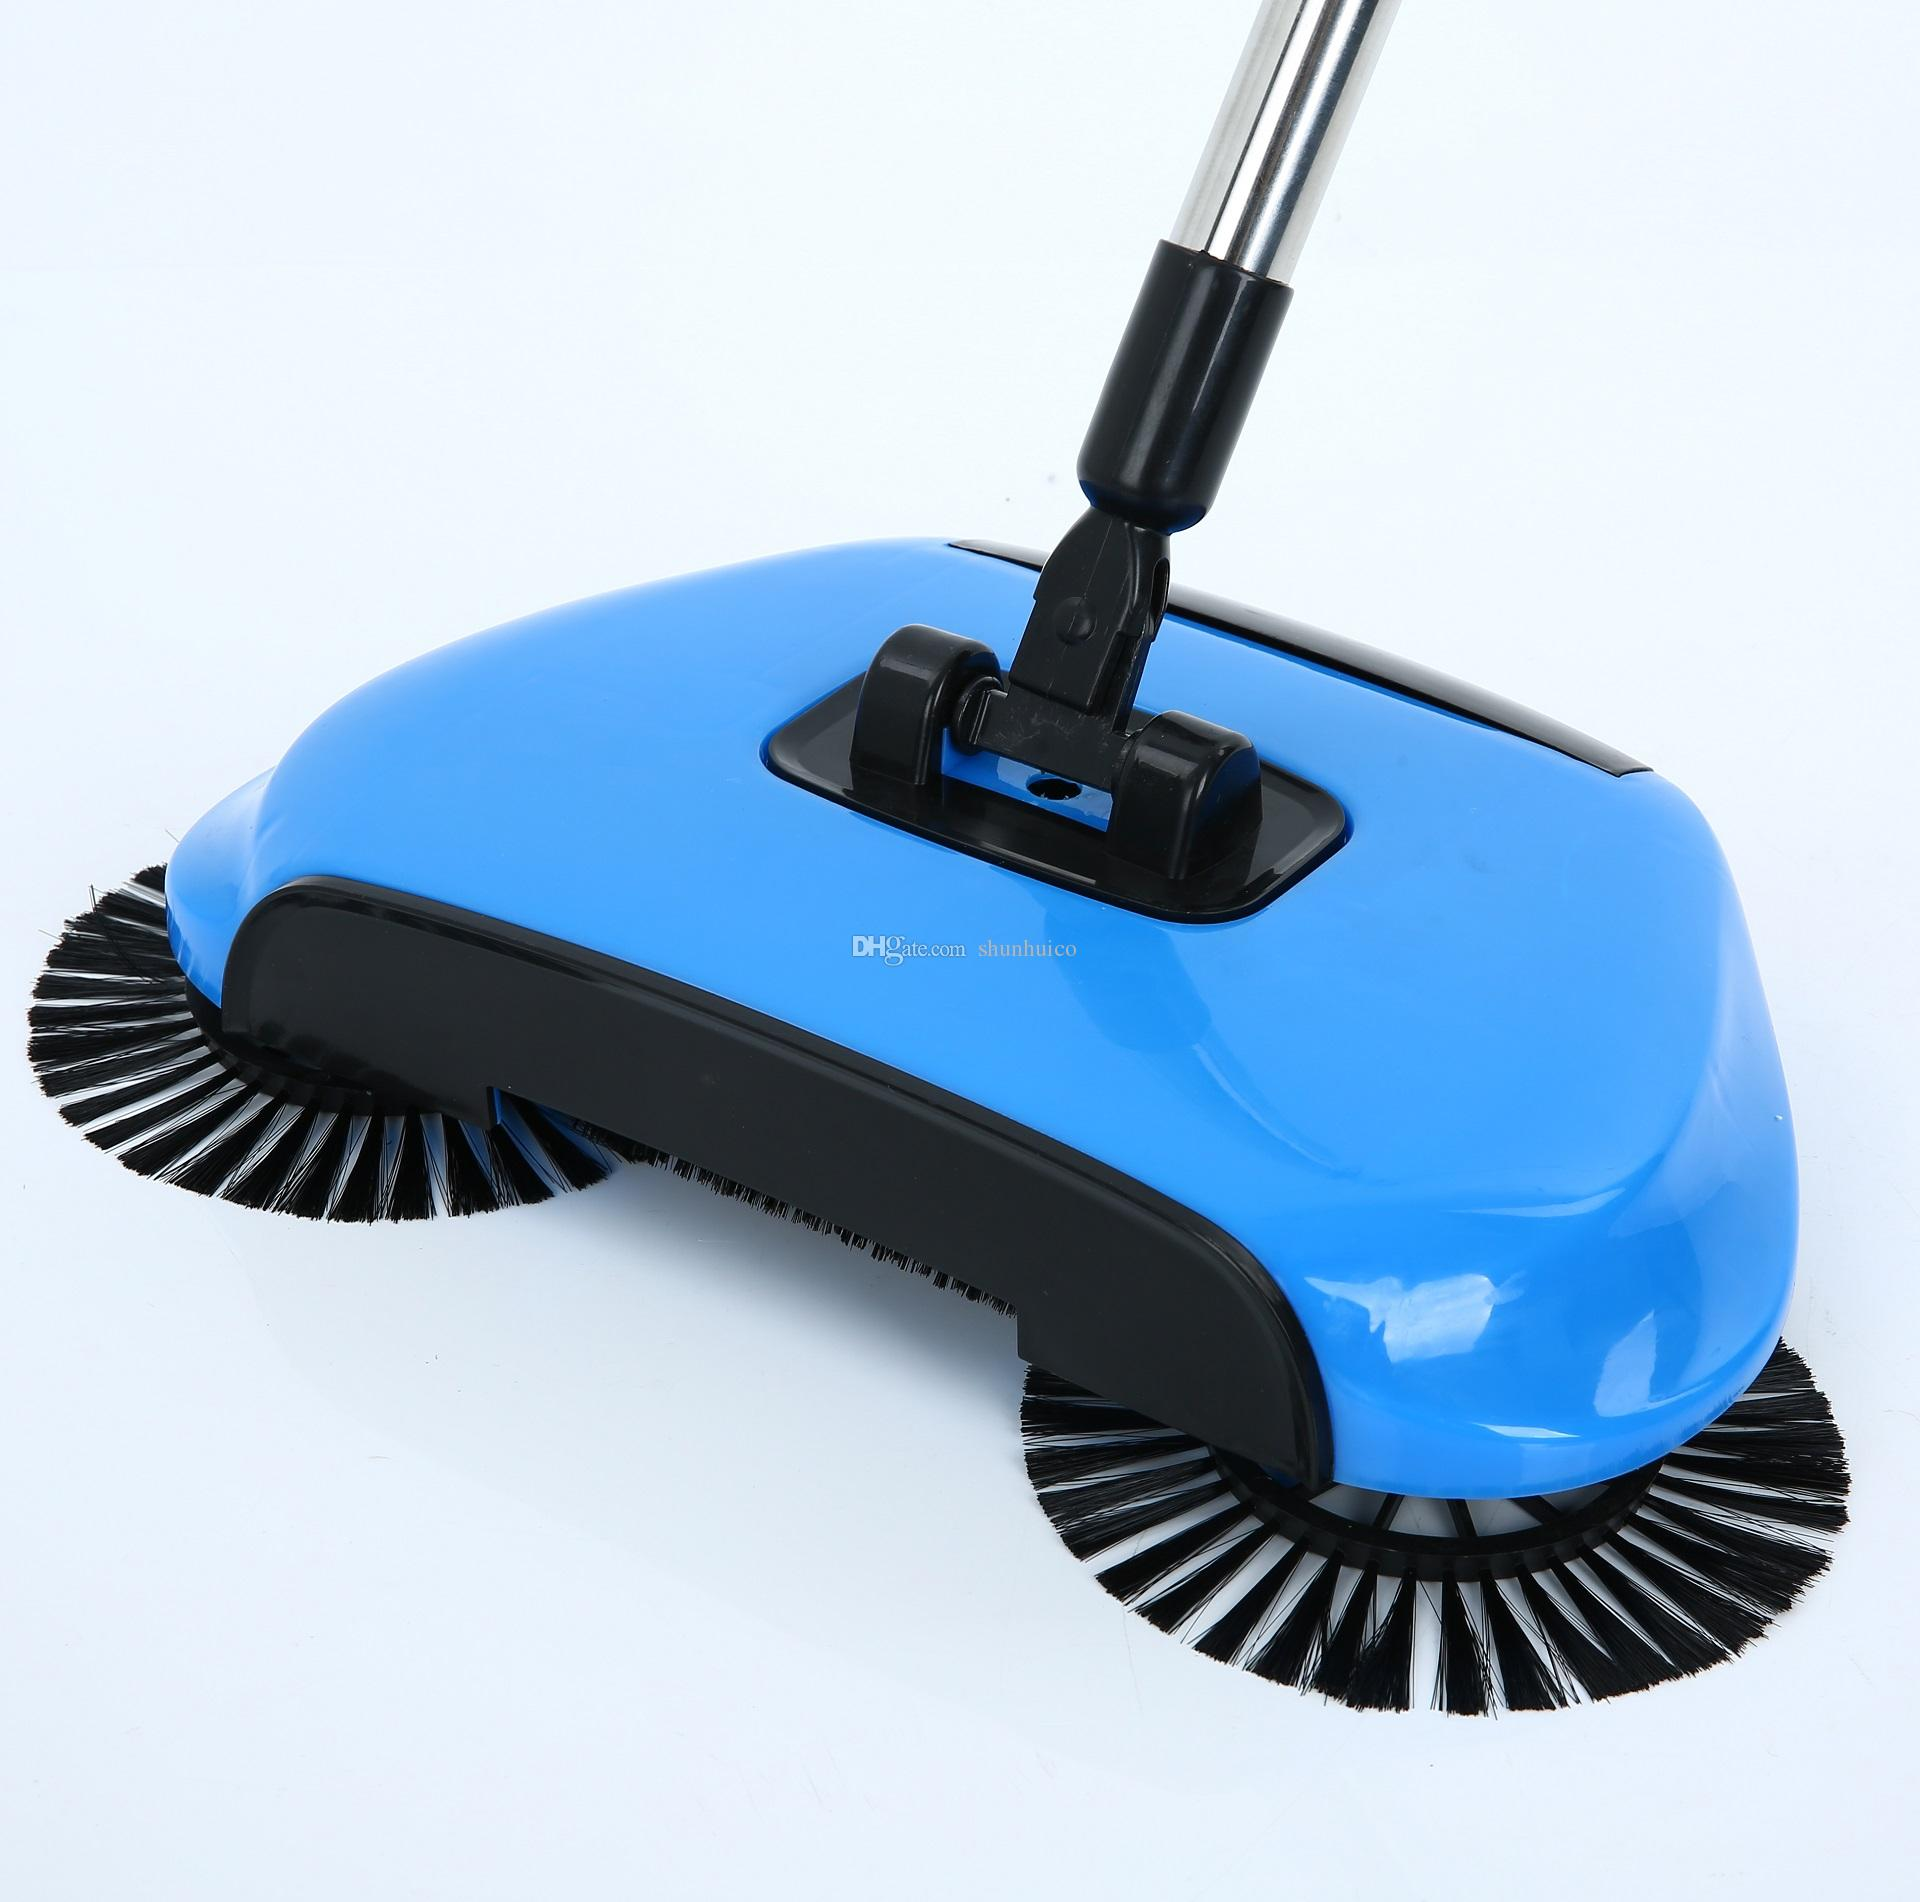 3 in 1 magic broom hand push sweeper 360 degree rotate spin broom stainless steel pole dustpan practical household cleaning tools